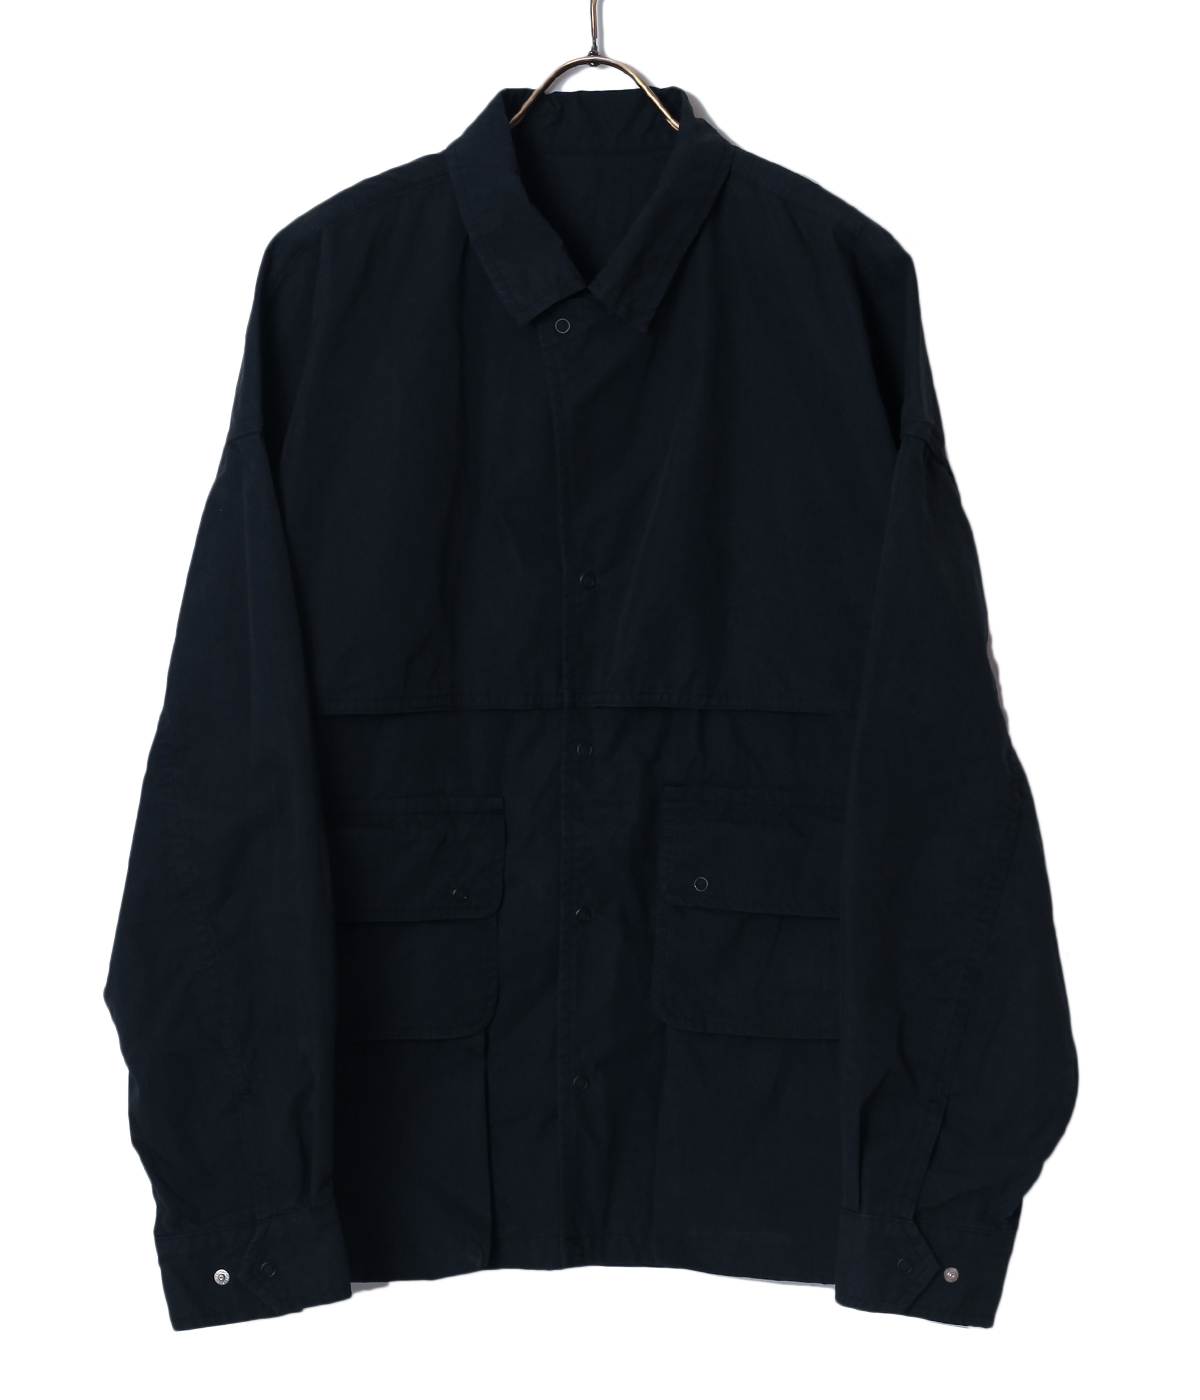 FIVE POCKET JACKET